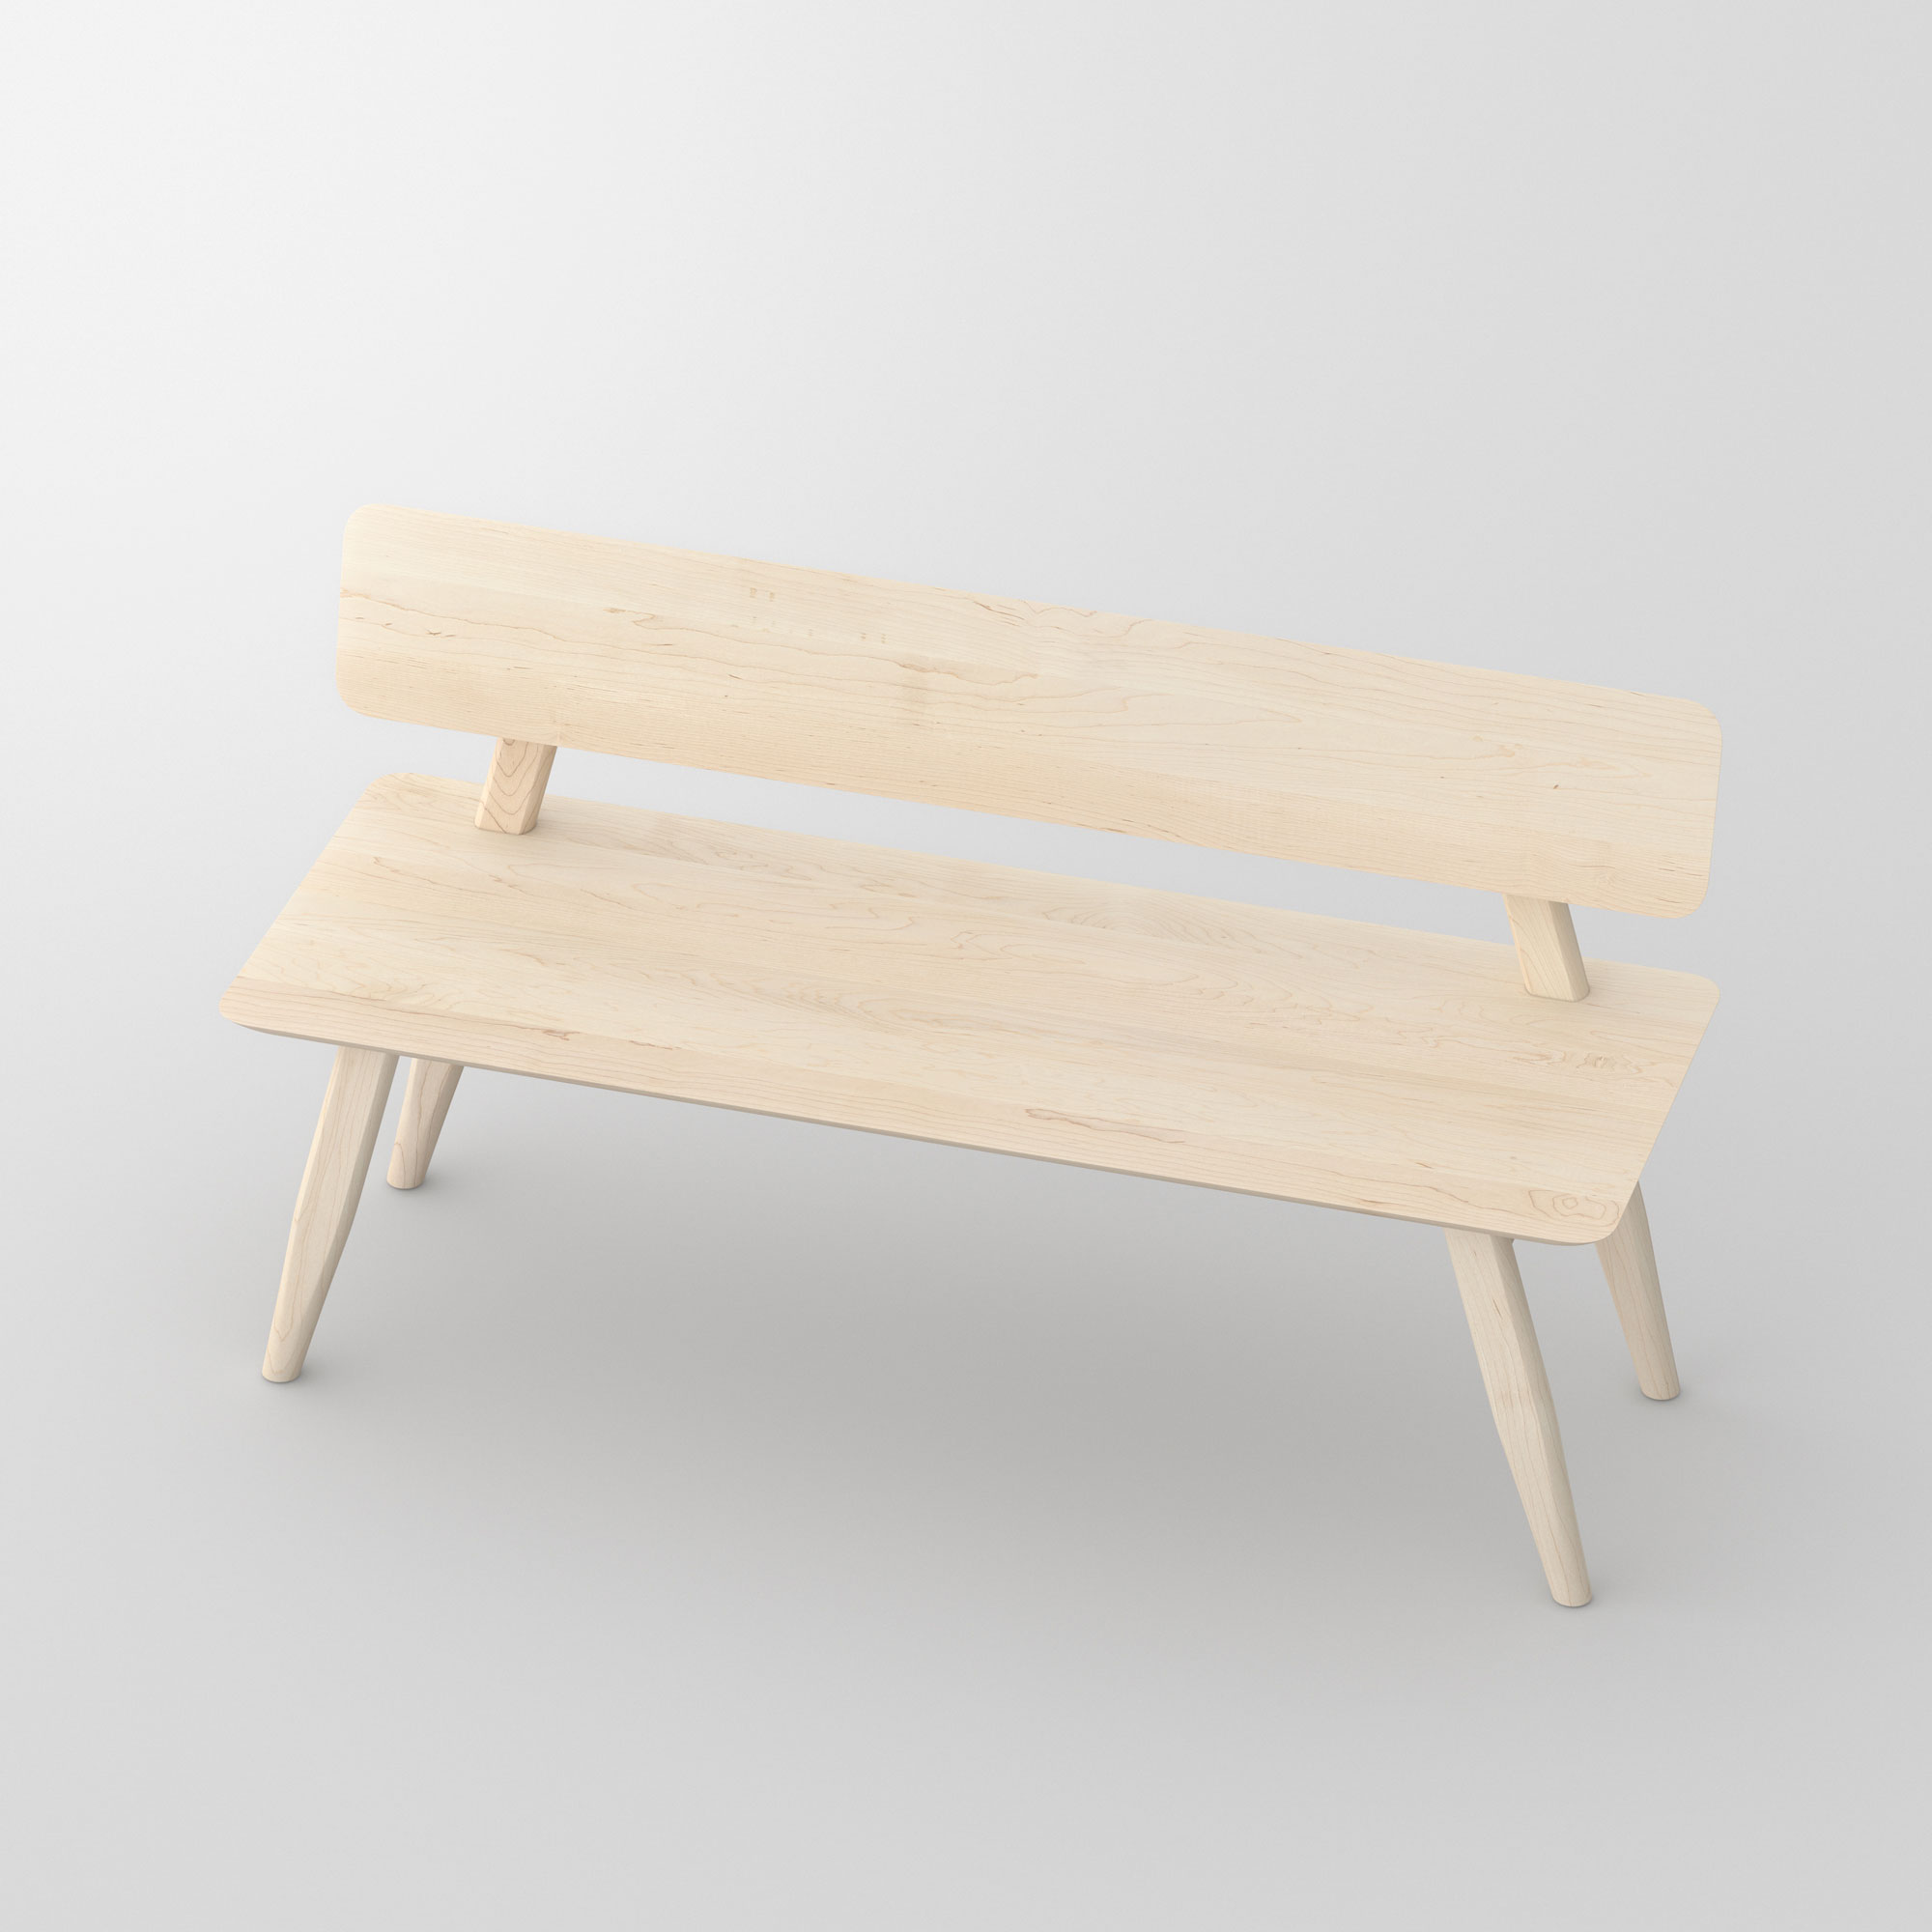 Bench with Back AETAS RL cam3 custom made in solid wood by vitamin design